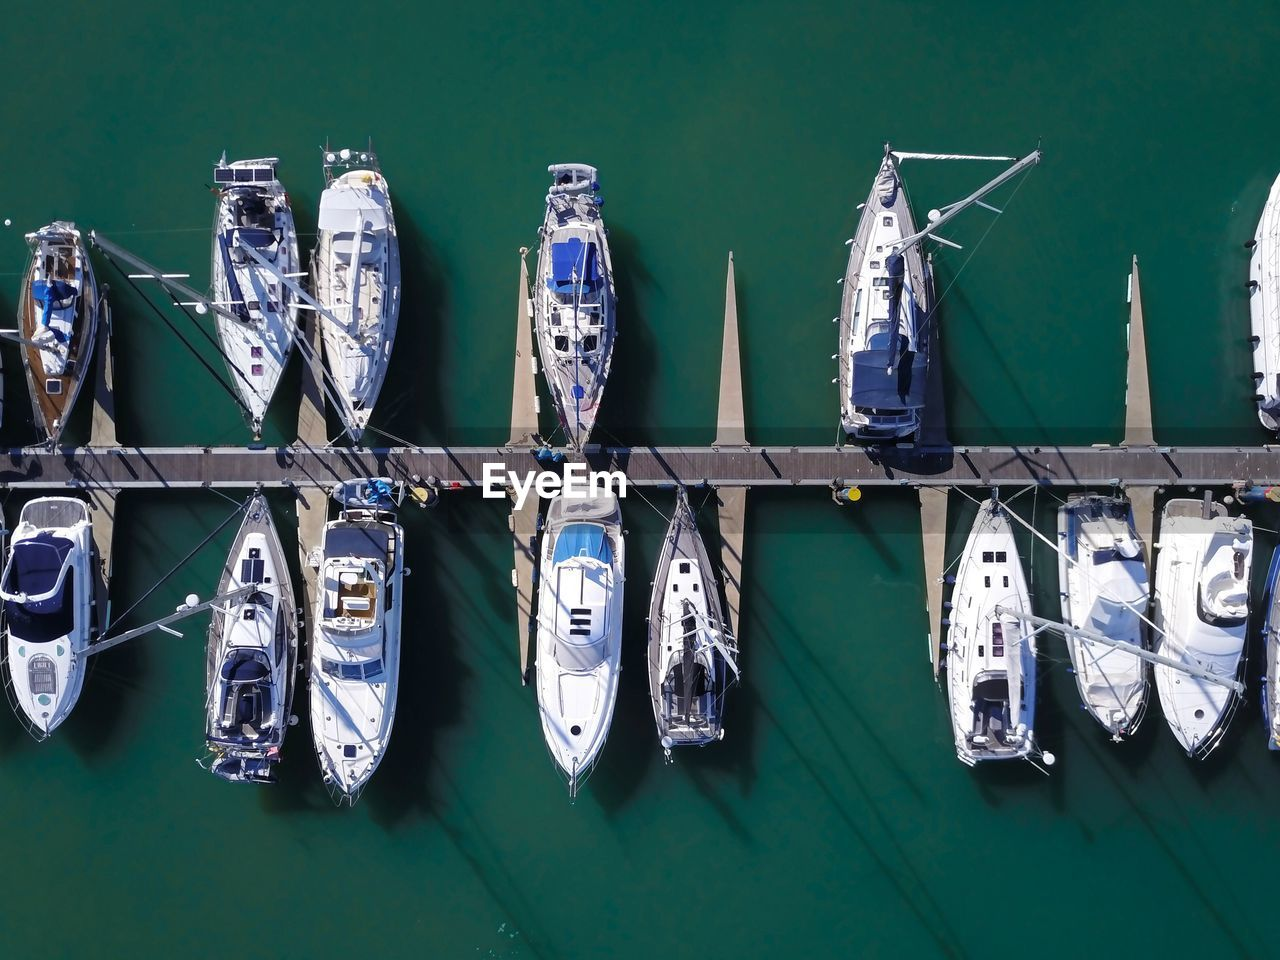 transportation, nautical vessel, no people, side by side, mode of transportation, in a row, day, green color, water, outdoors, large group of objects, blue, moored, travel, clothing, arrangement, still life, high angle view, directly above, sailboat